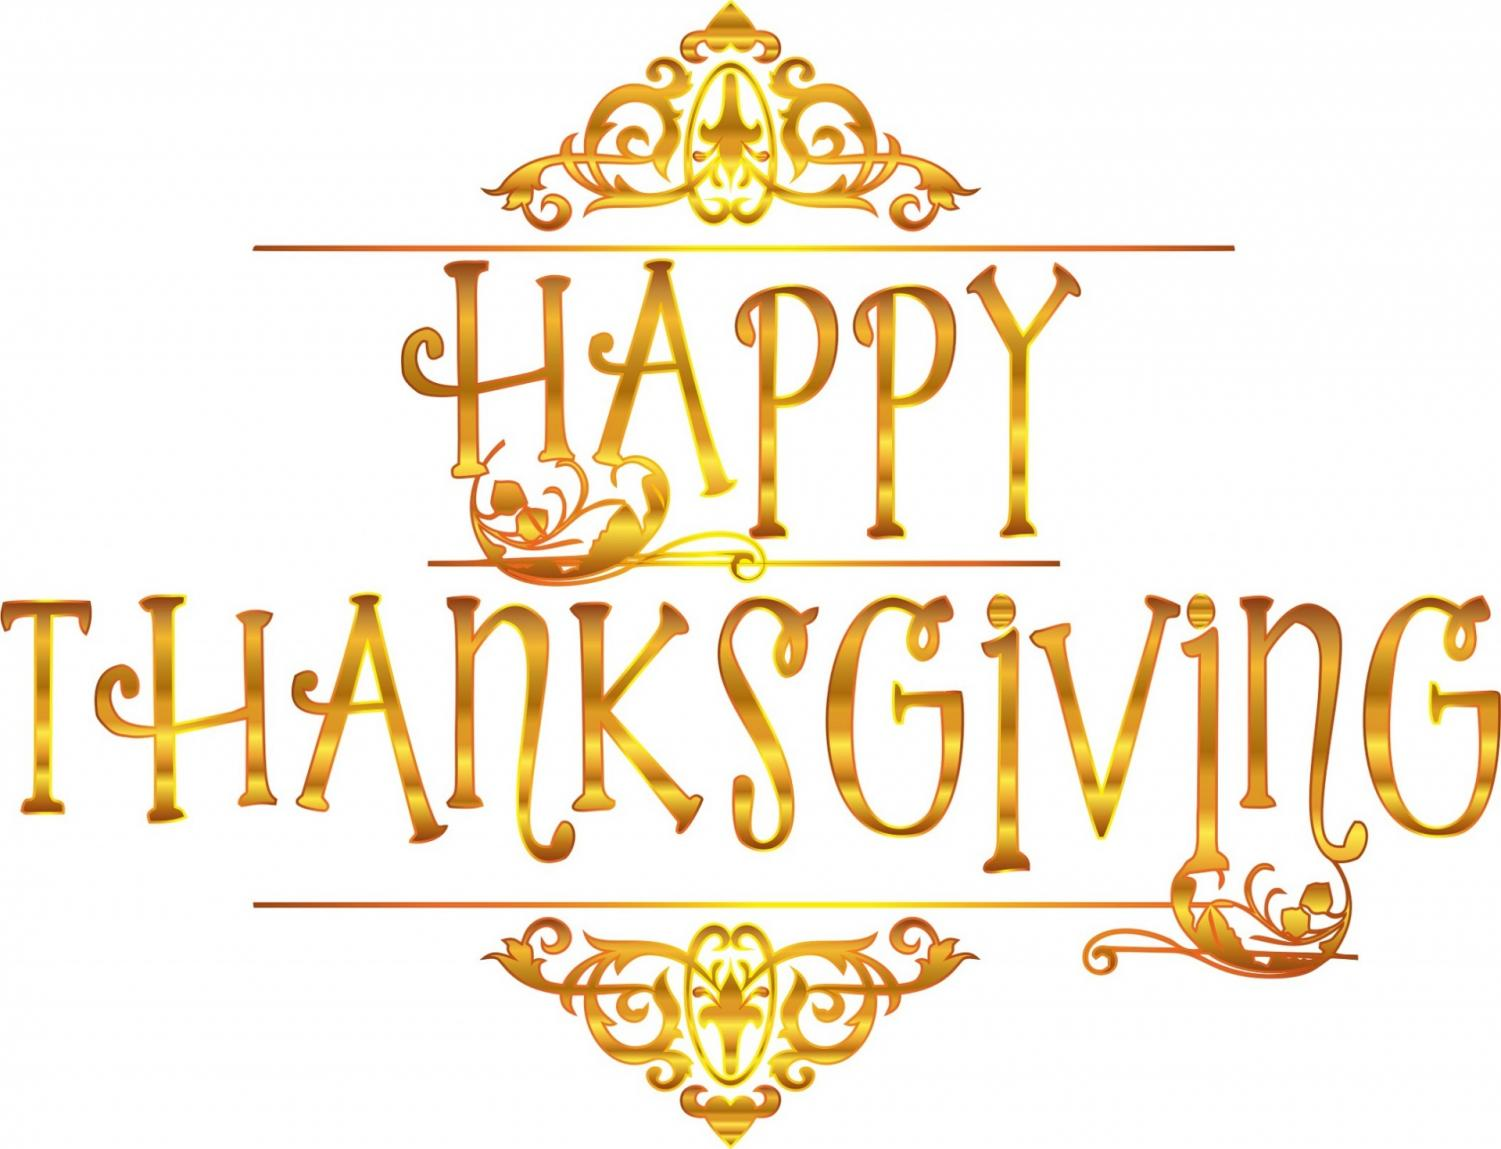 Taken from: http://www.publicdomainpictures.net/view-image.php?image=233185&picture=gold-happy-thanksgiving